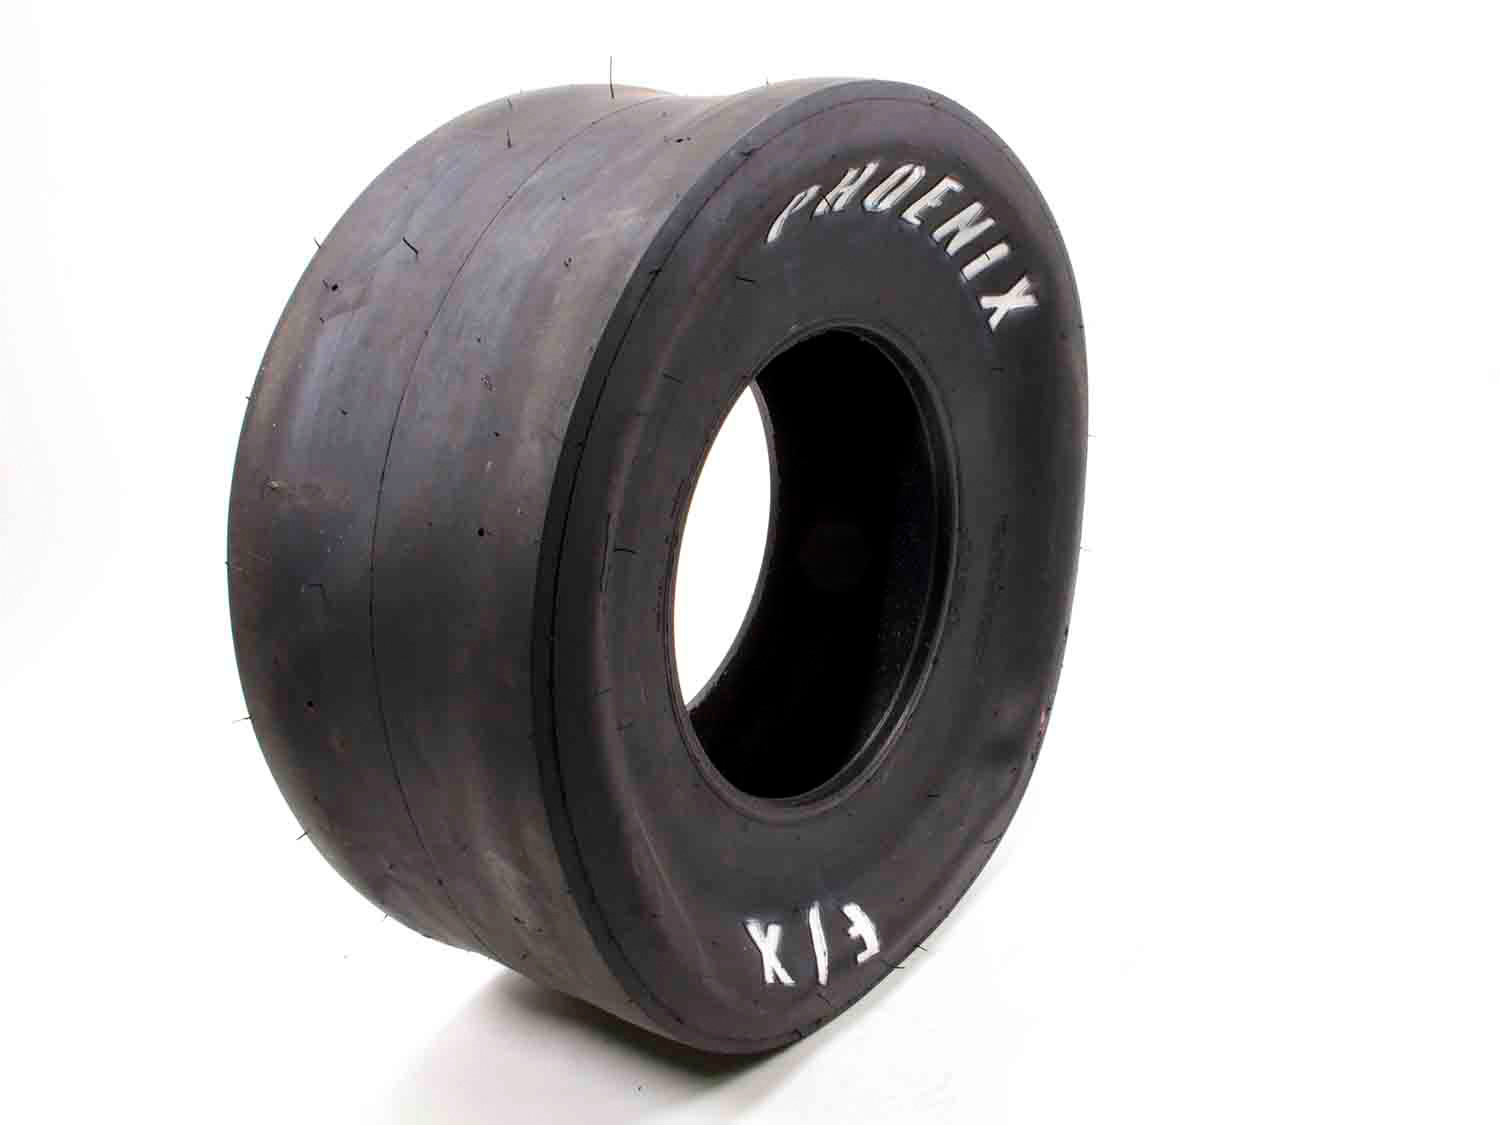 Phoenix Racing Tires PH335 Tire, Drag FX Slick, 32.0 x 14.0-15, Bias Ply, F9 Compound, White Letter Sidewall, Each